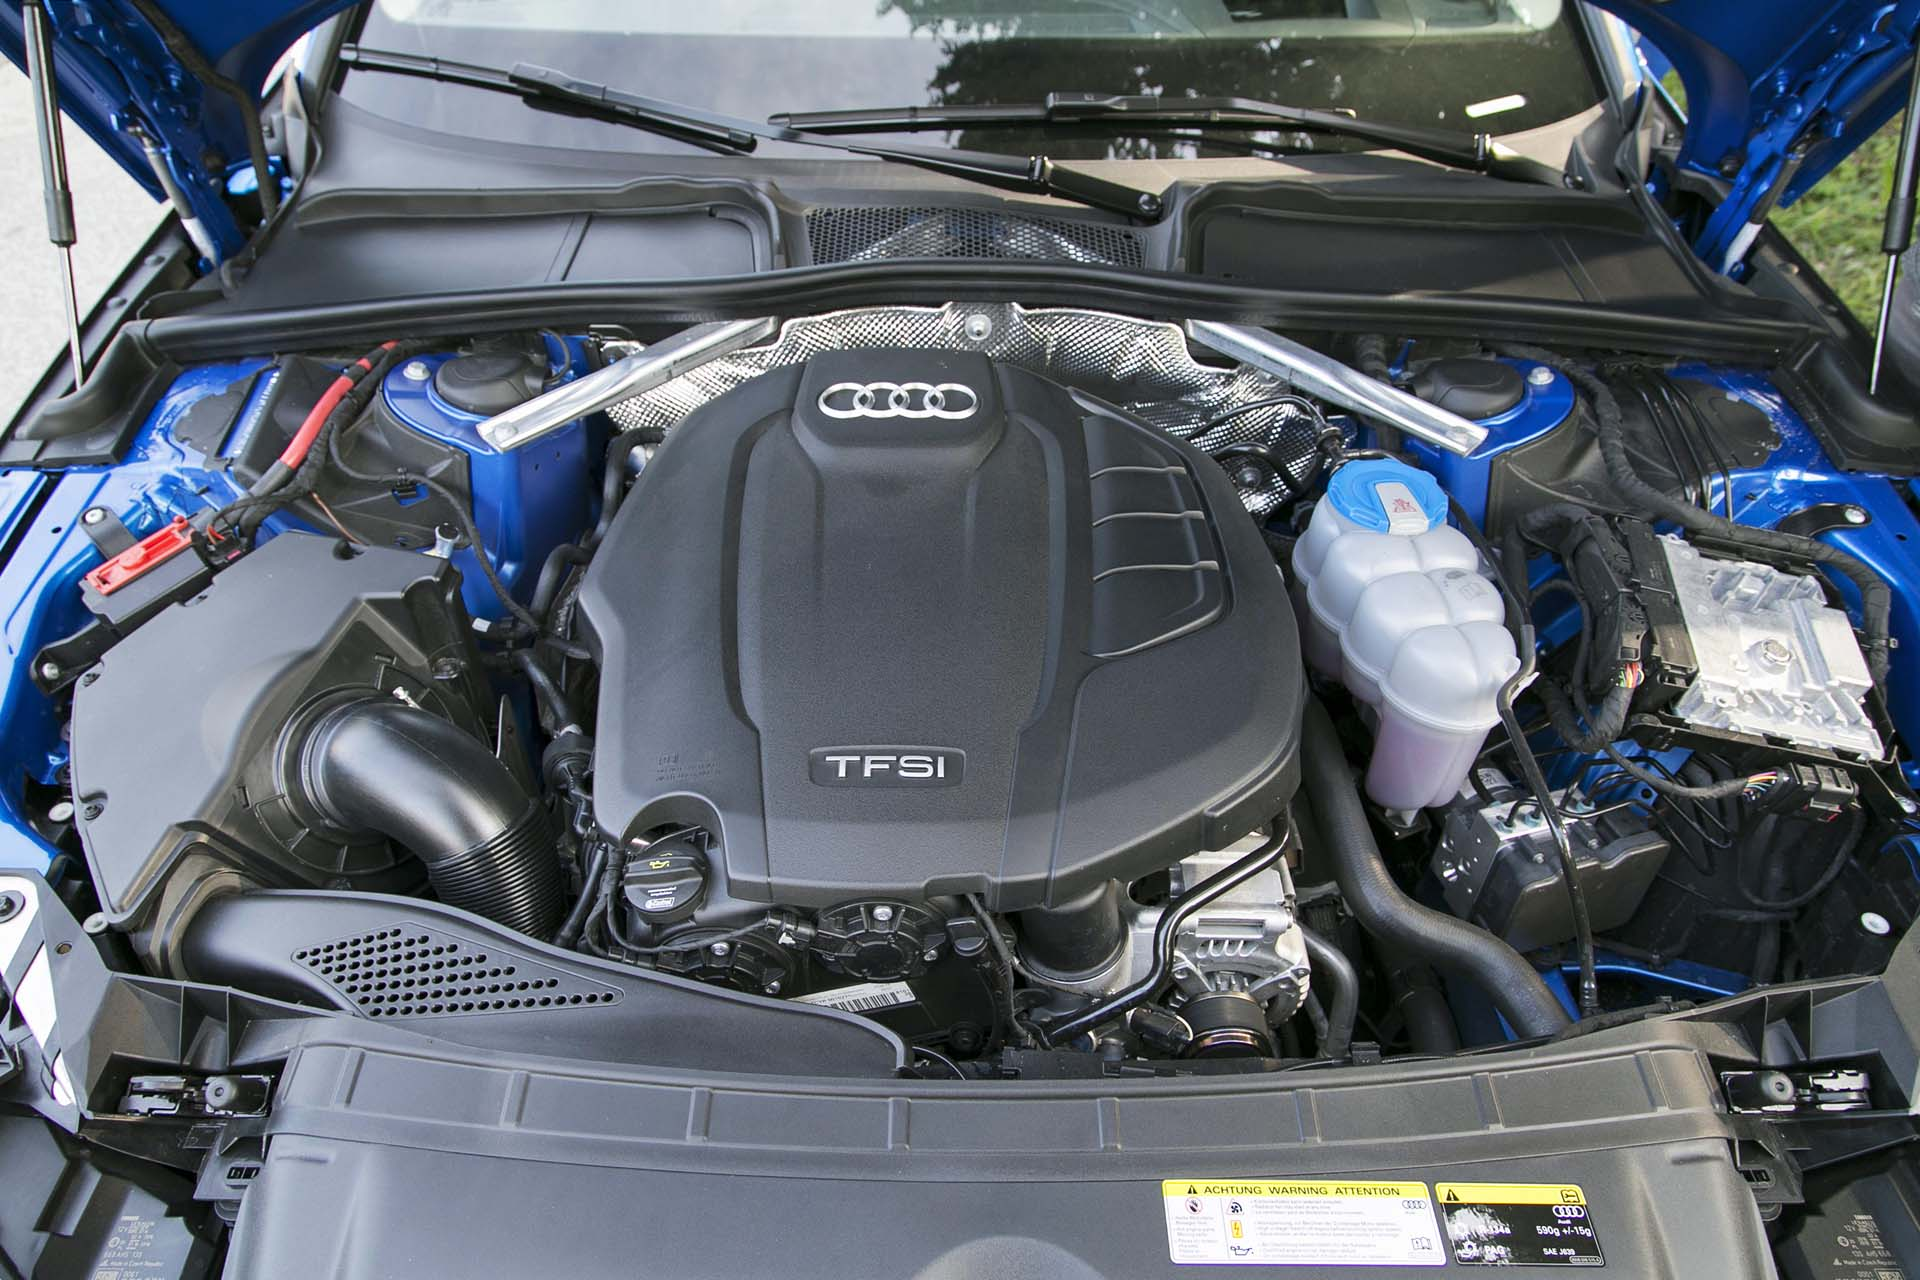 Missing Cover In Engine Compartment